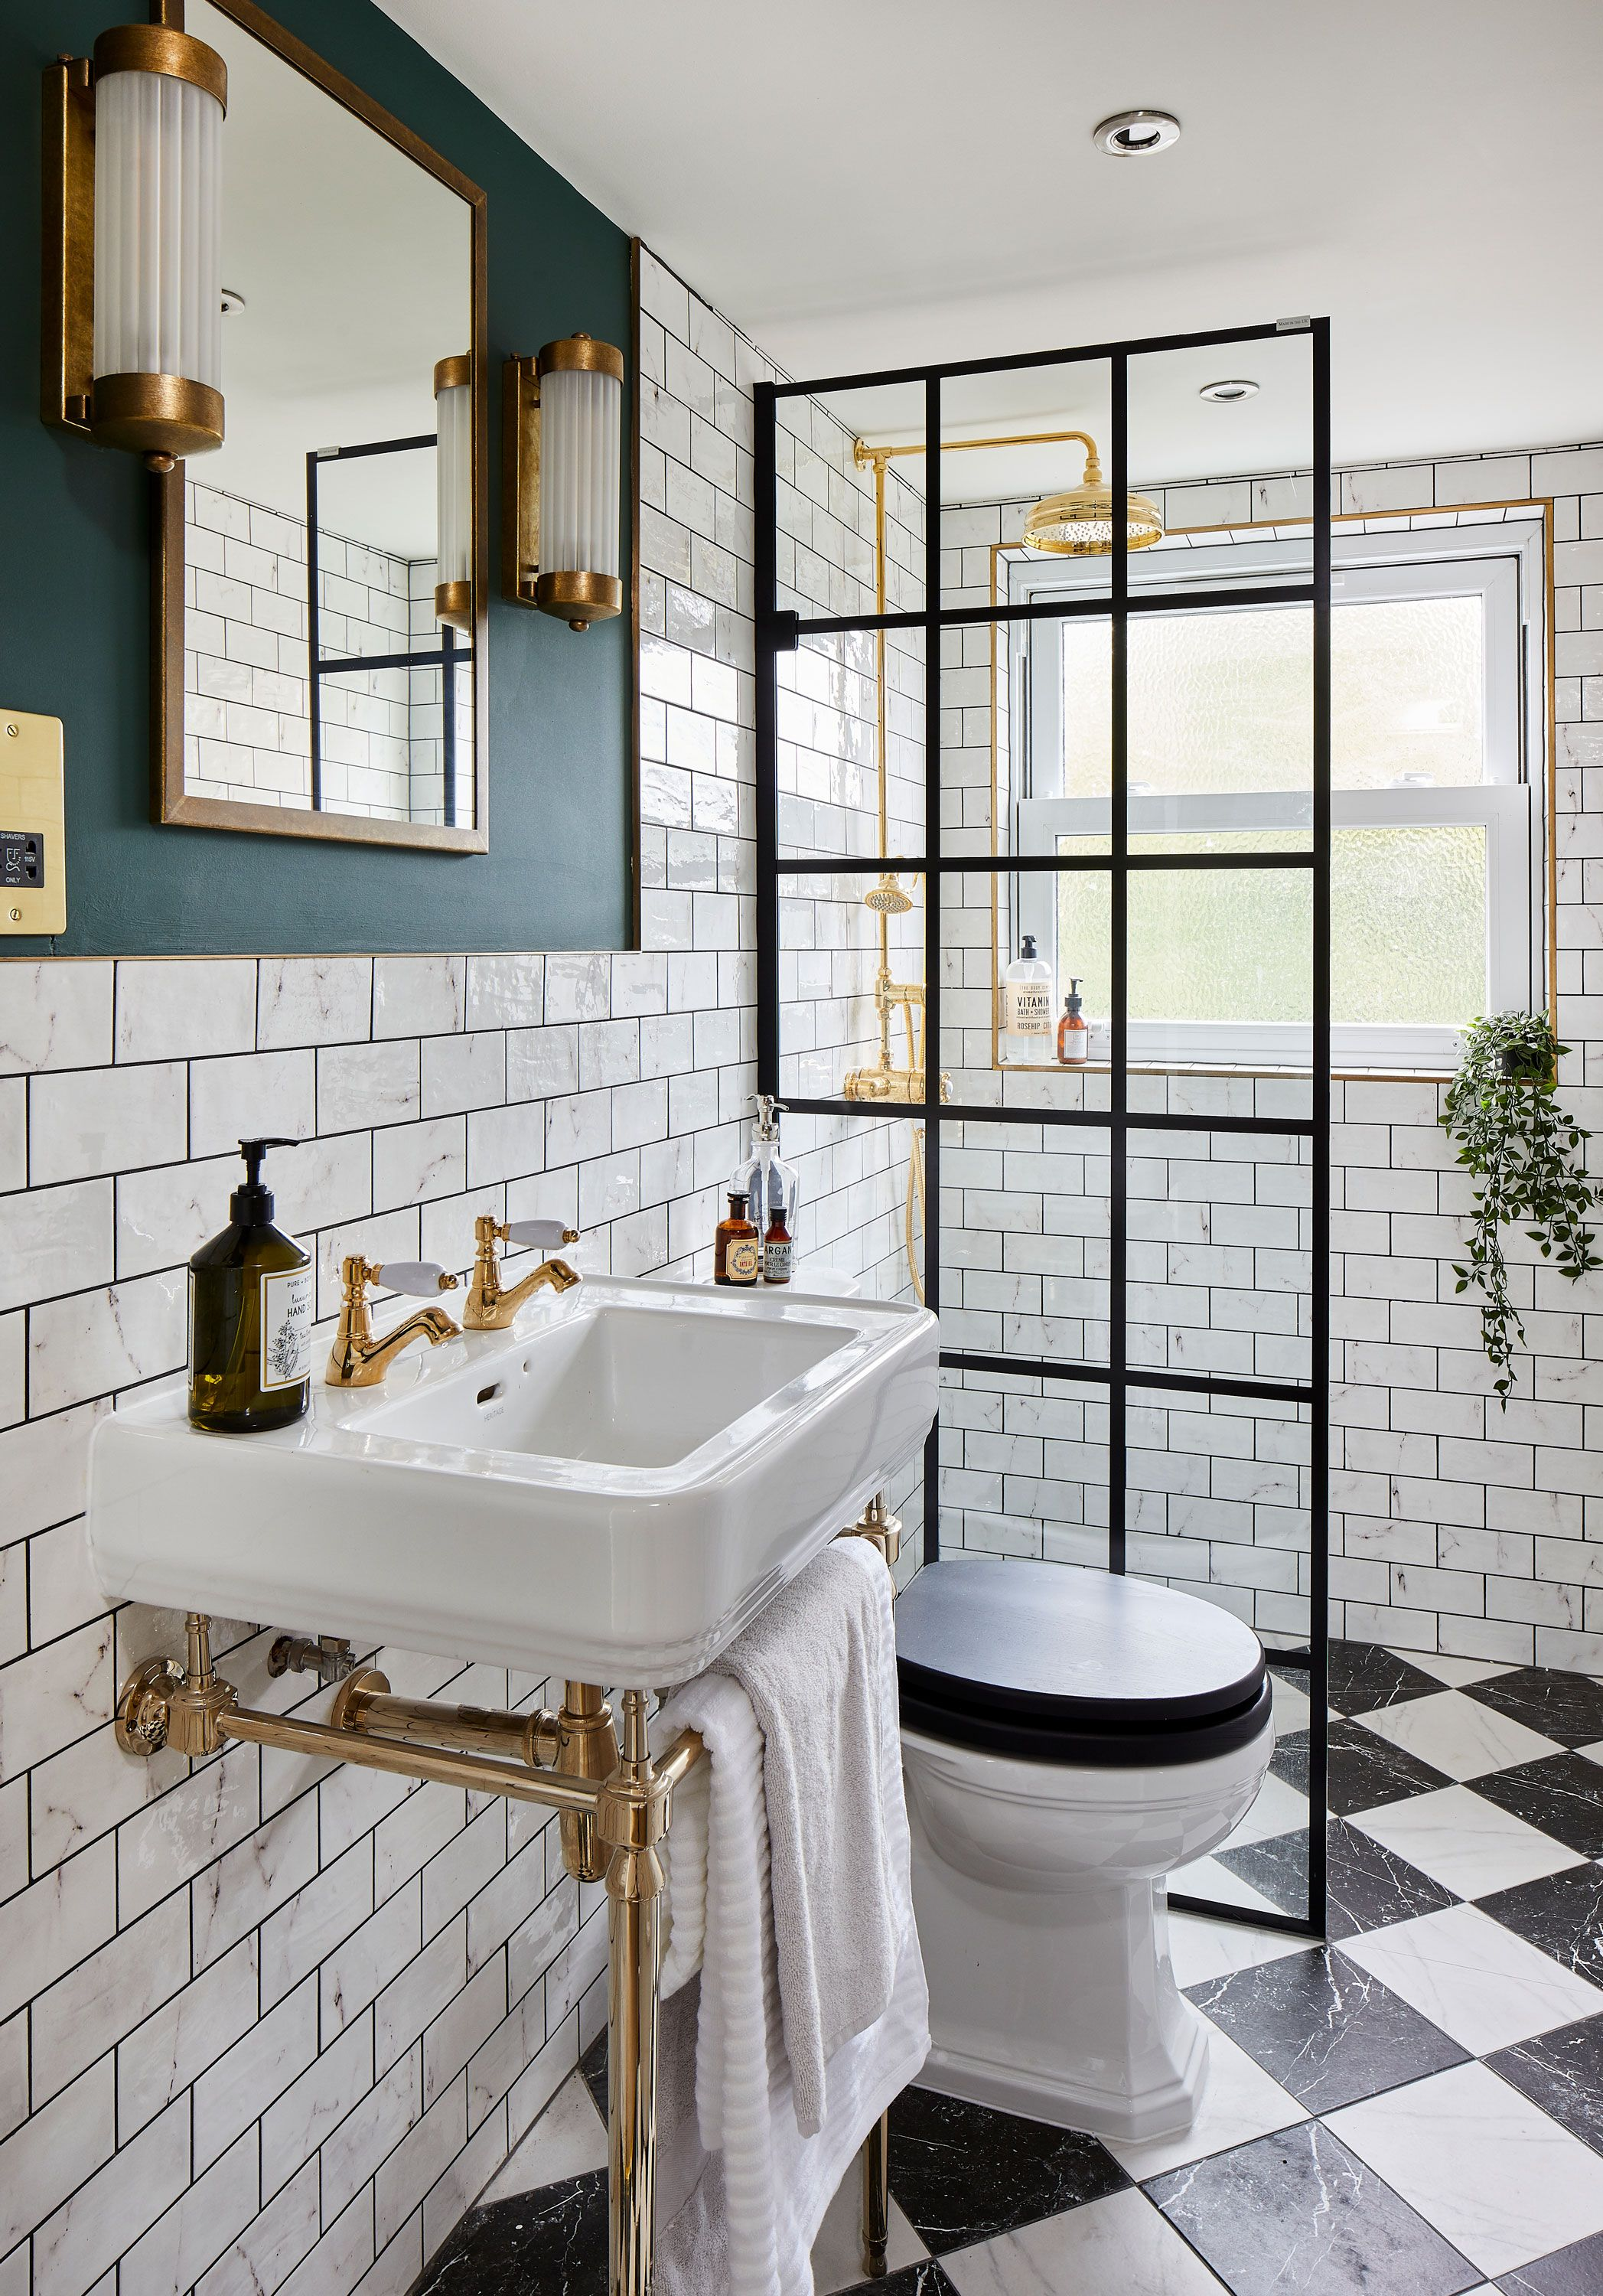 Real home: en suite shower room is packed with style | Real Homes